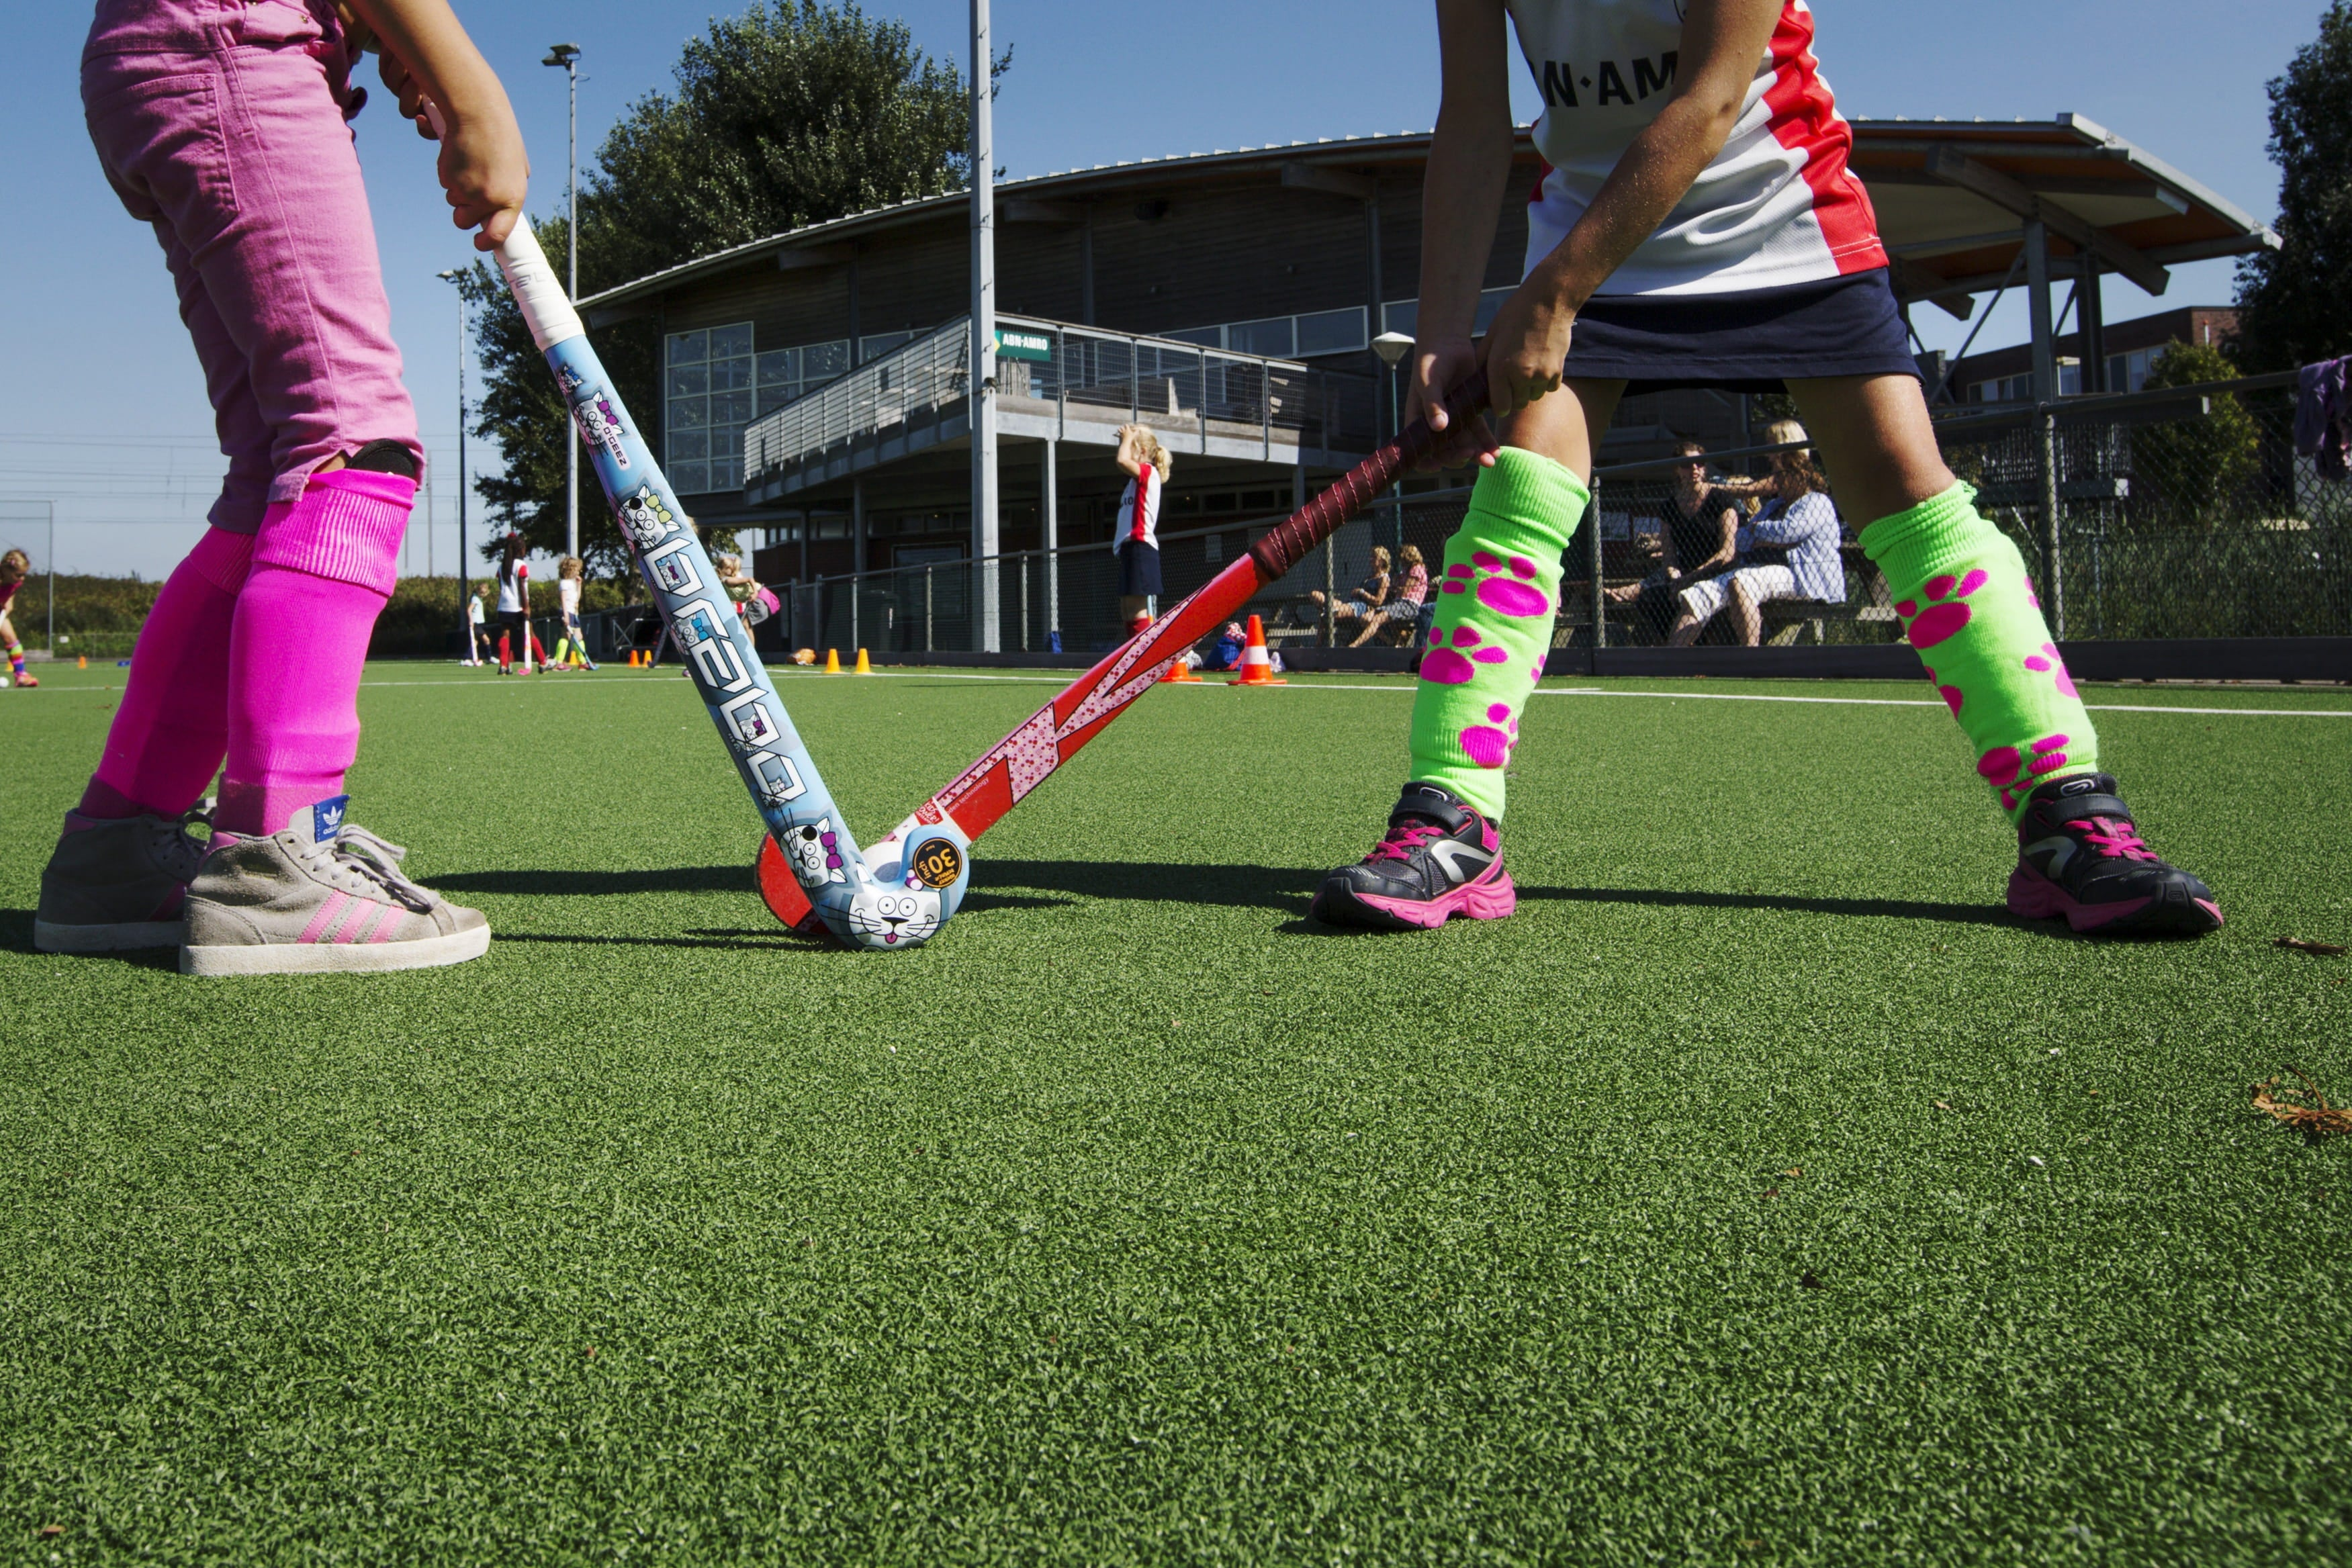 A photograph from ground level of two children holding hockey sticks, about to start a game